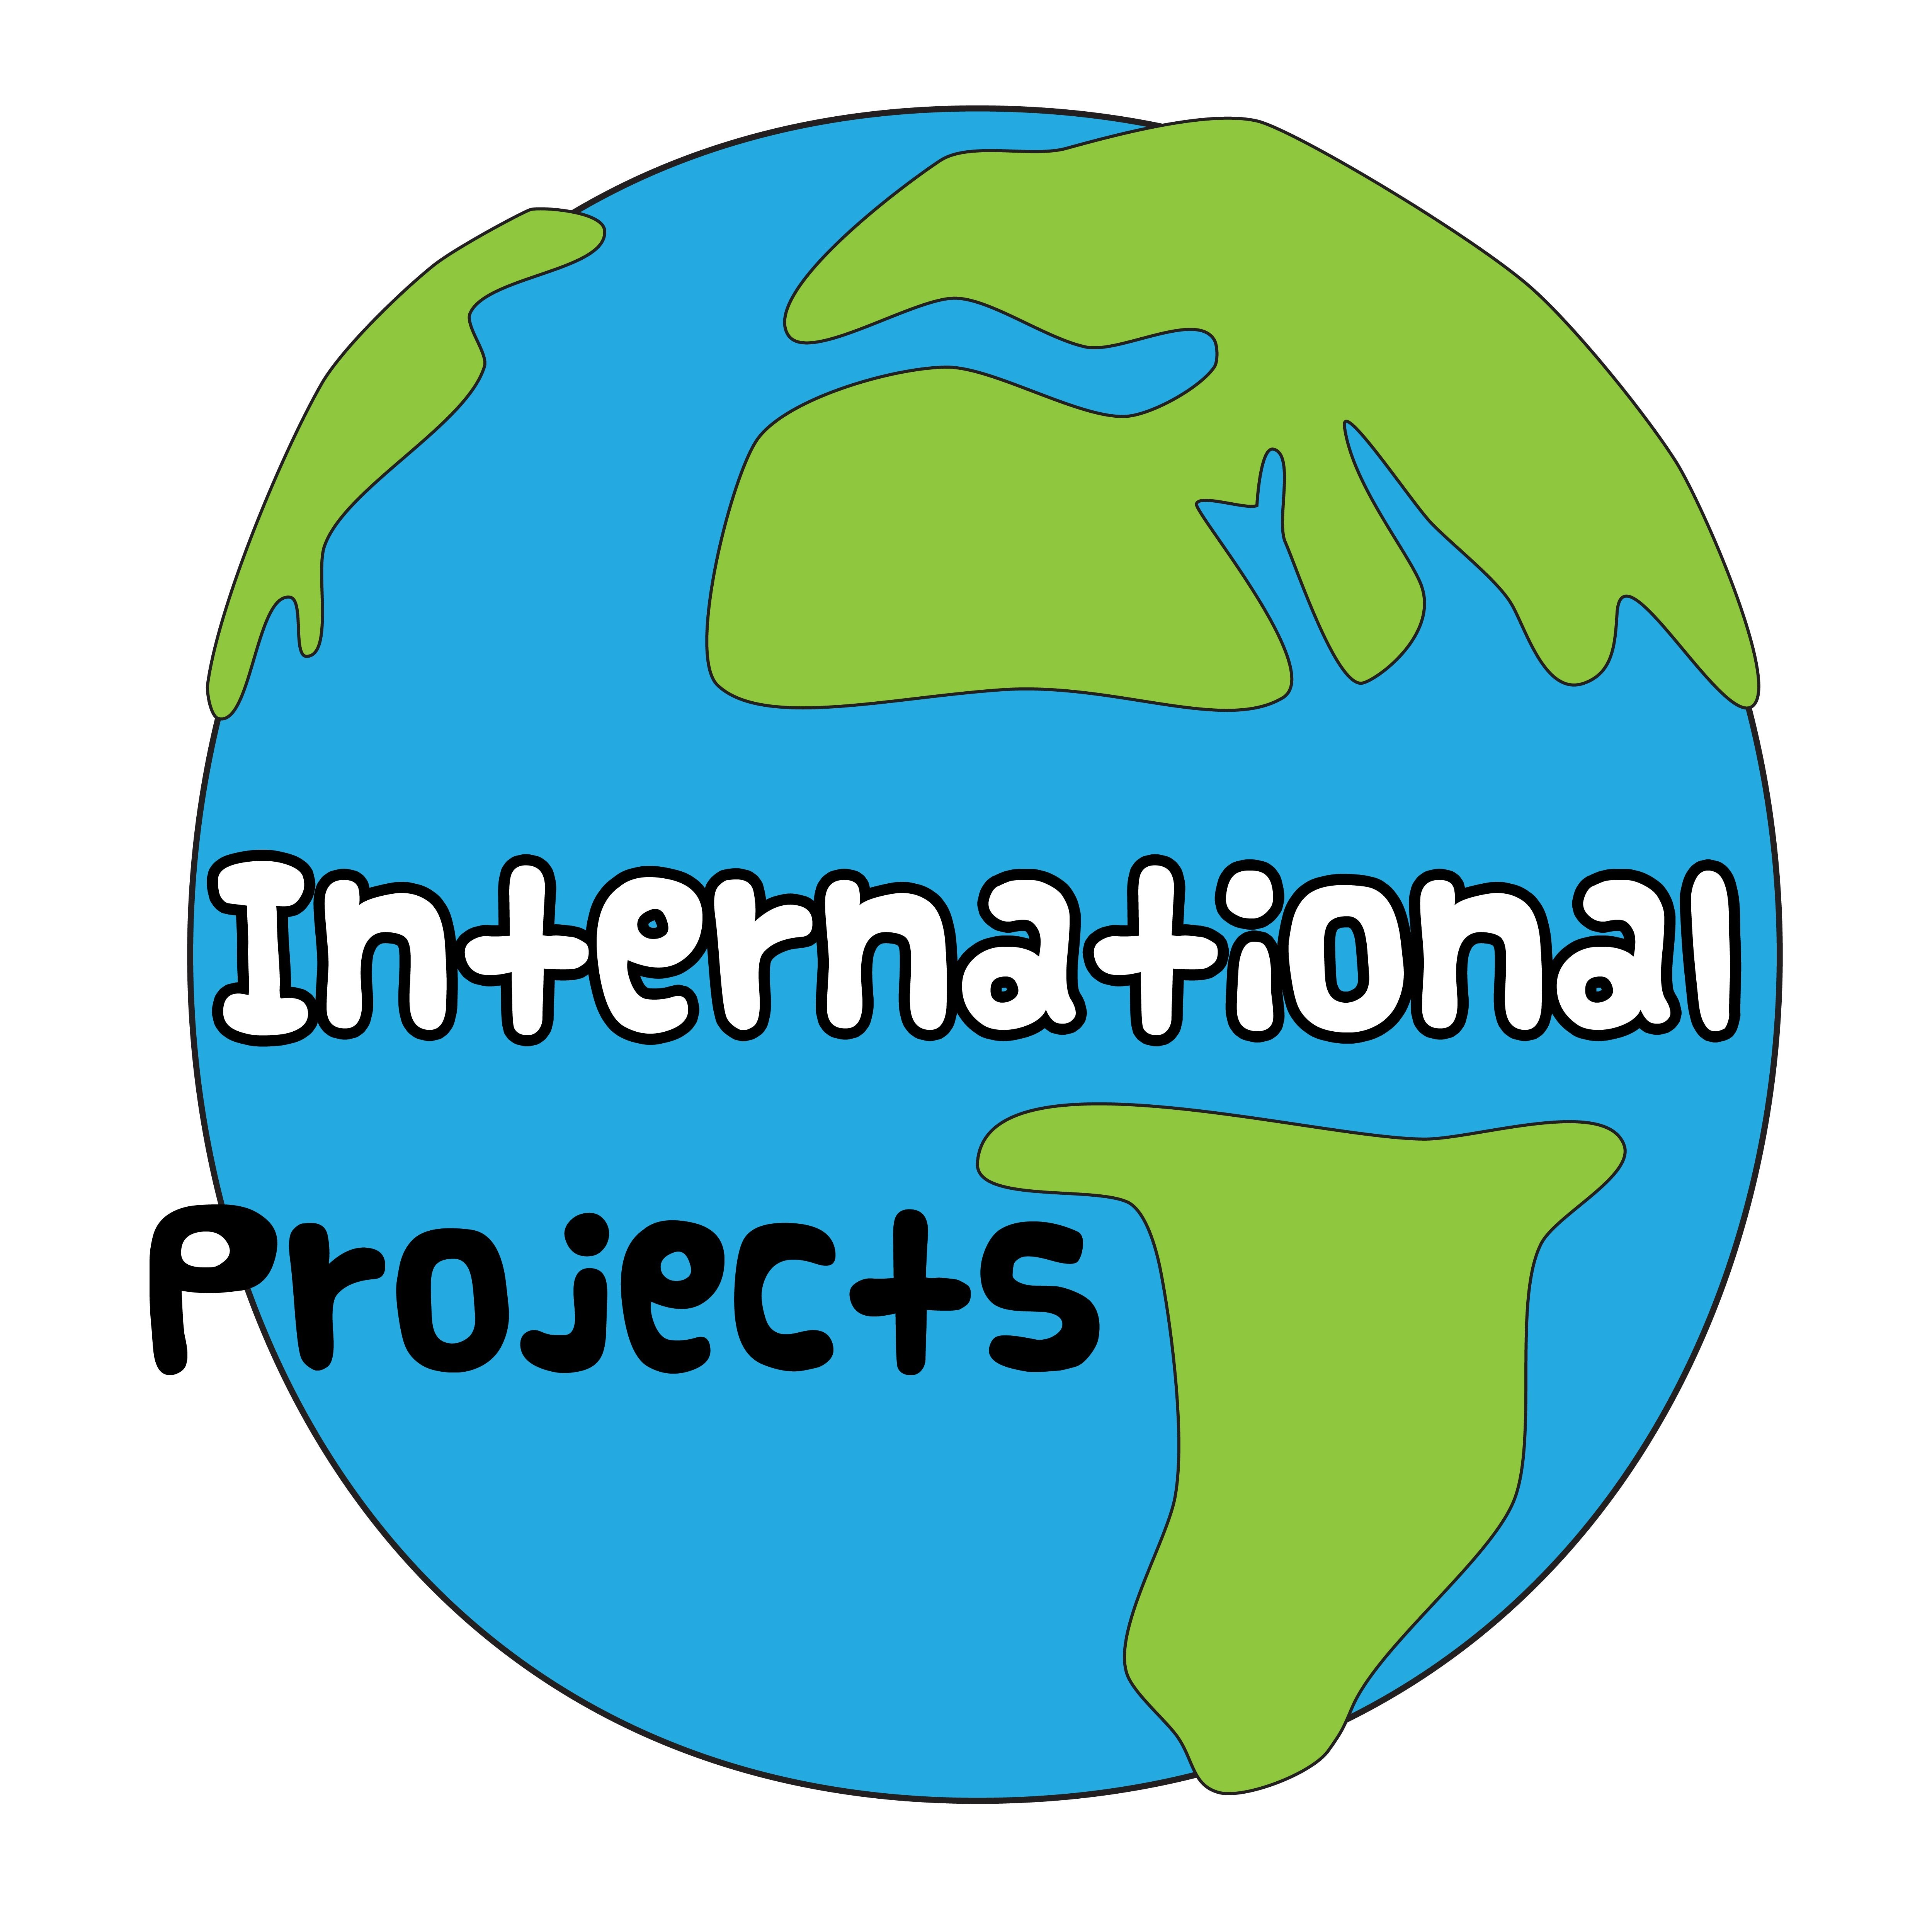 http://www.dnbegypt.com/youth-development-activities/international-projects